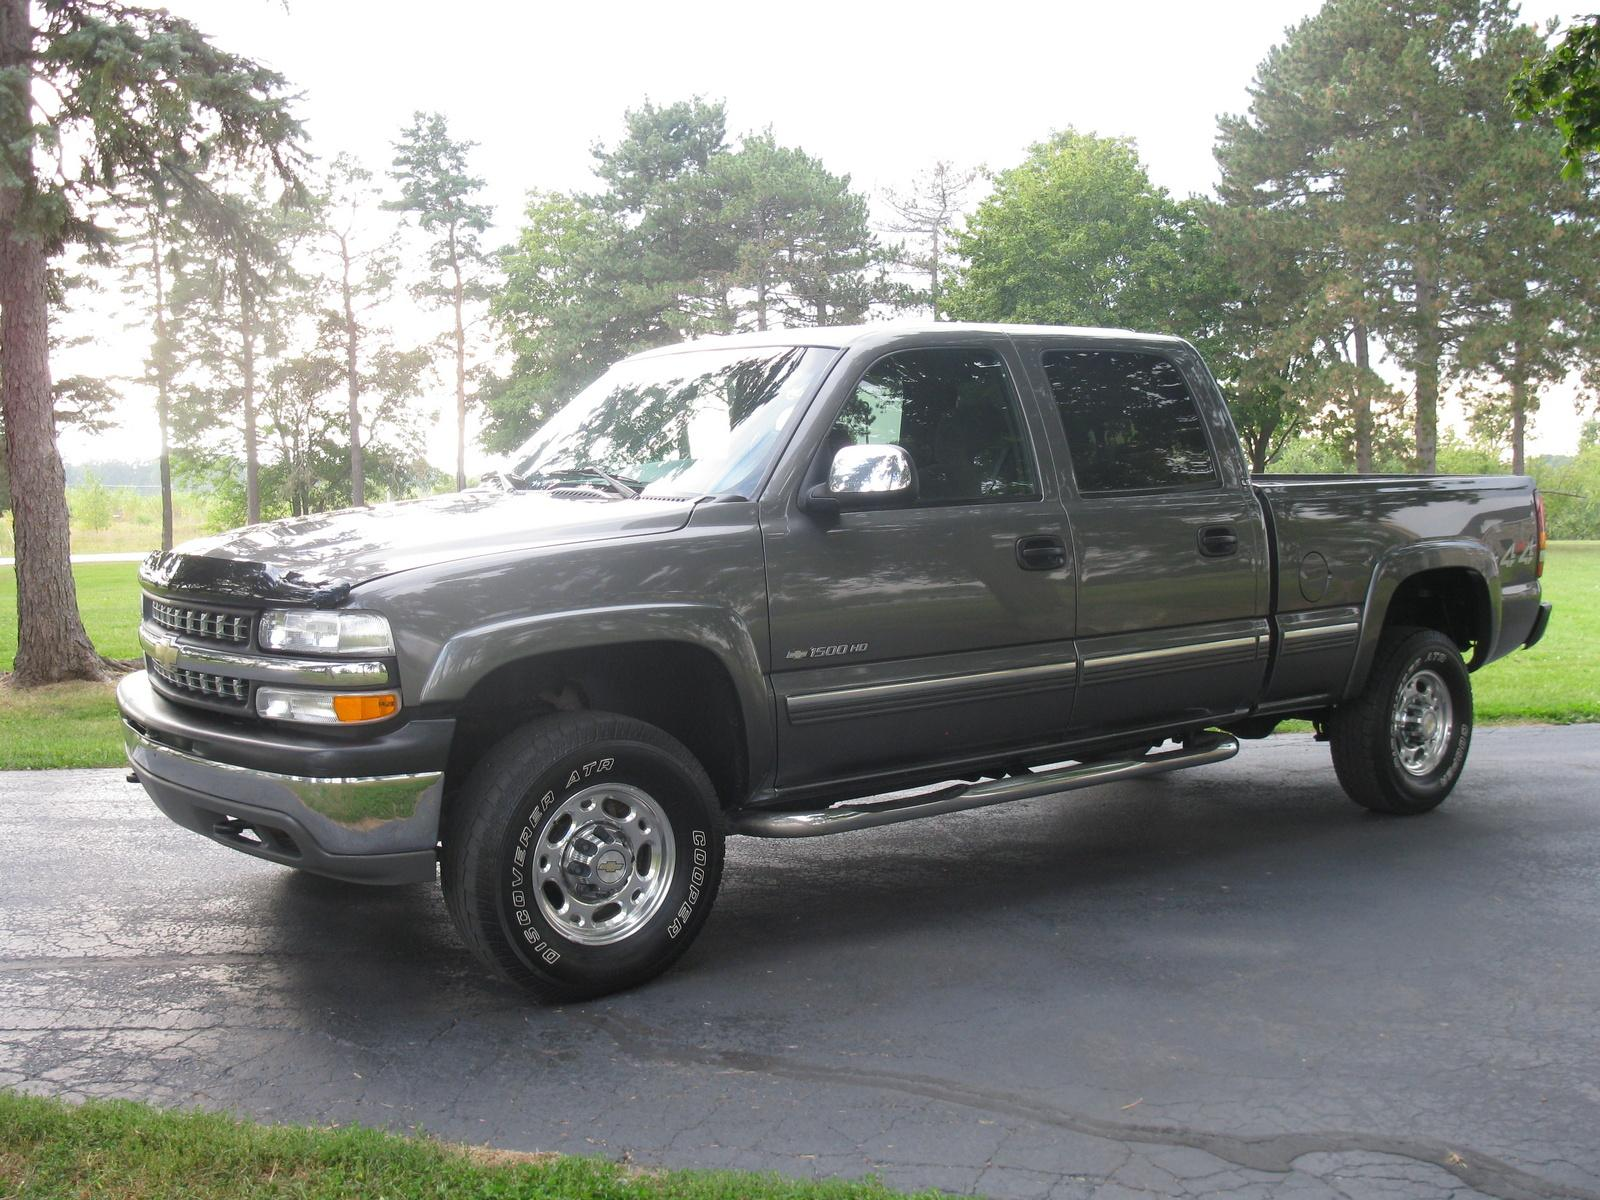 2002 Chevrolet Silverado 1500hd 5 800 1024 1280 1600 Origin